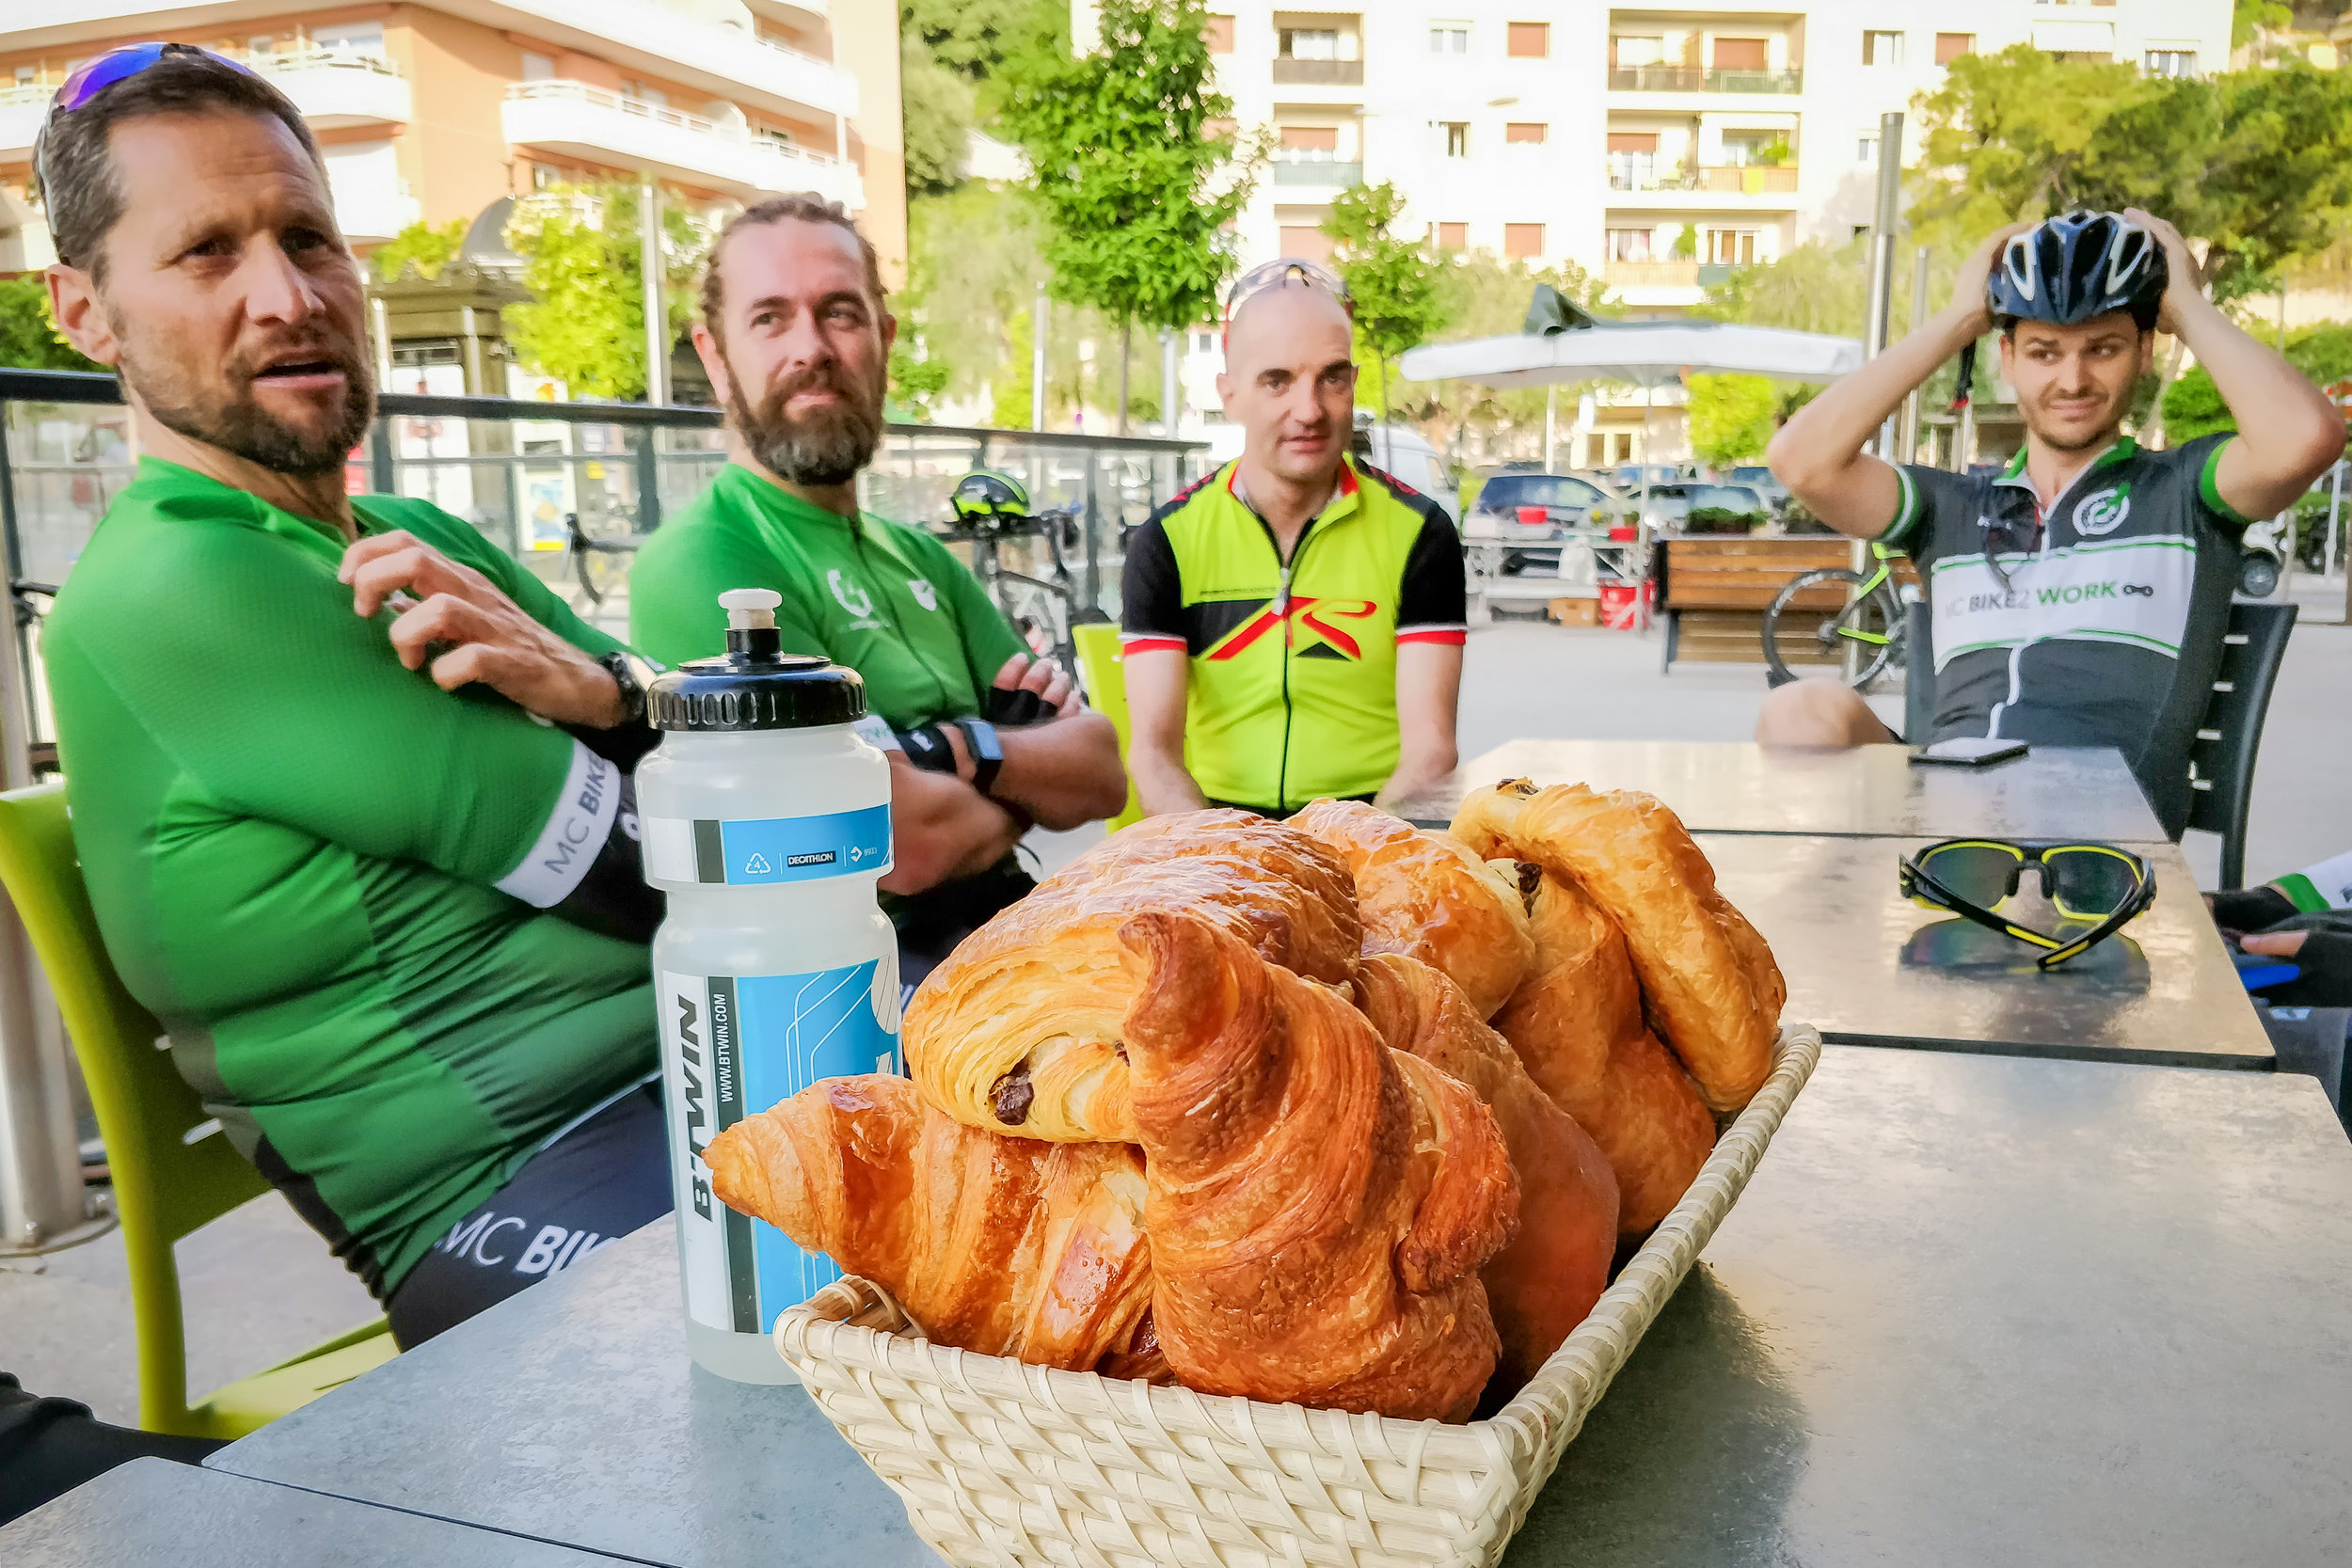 IMG_20180427_075956 - MC Bike2Work Coffee-Croissant Ride April 2018 HR © Ivan Blanco Vilar.jpg